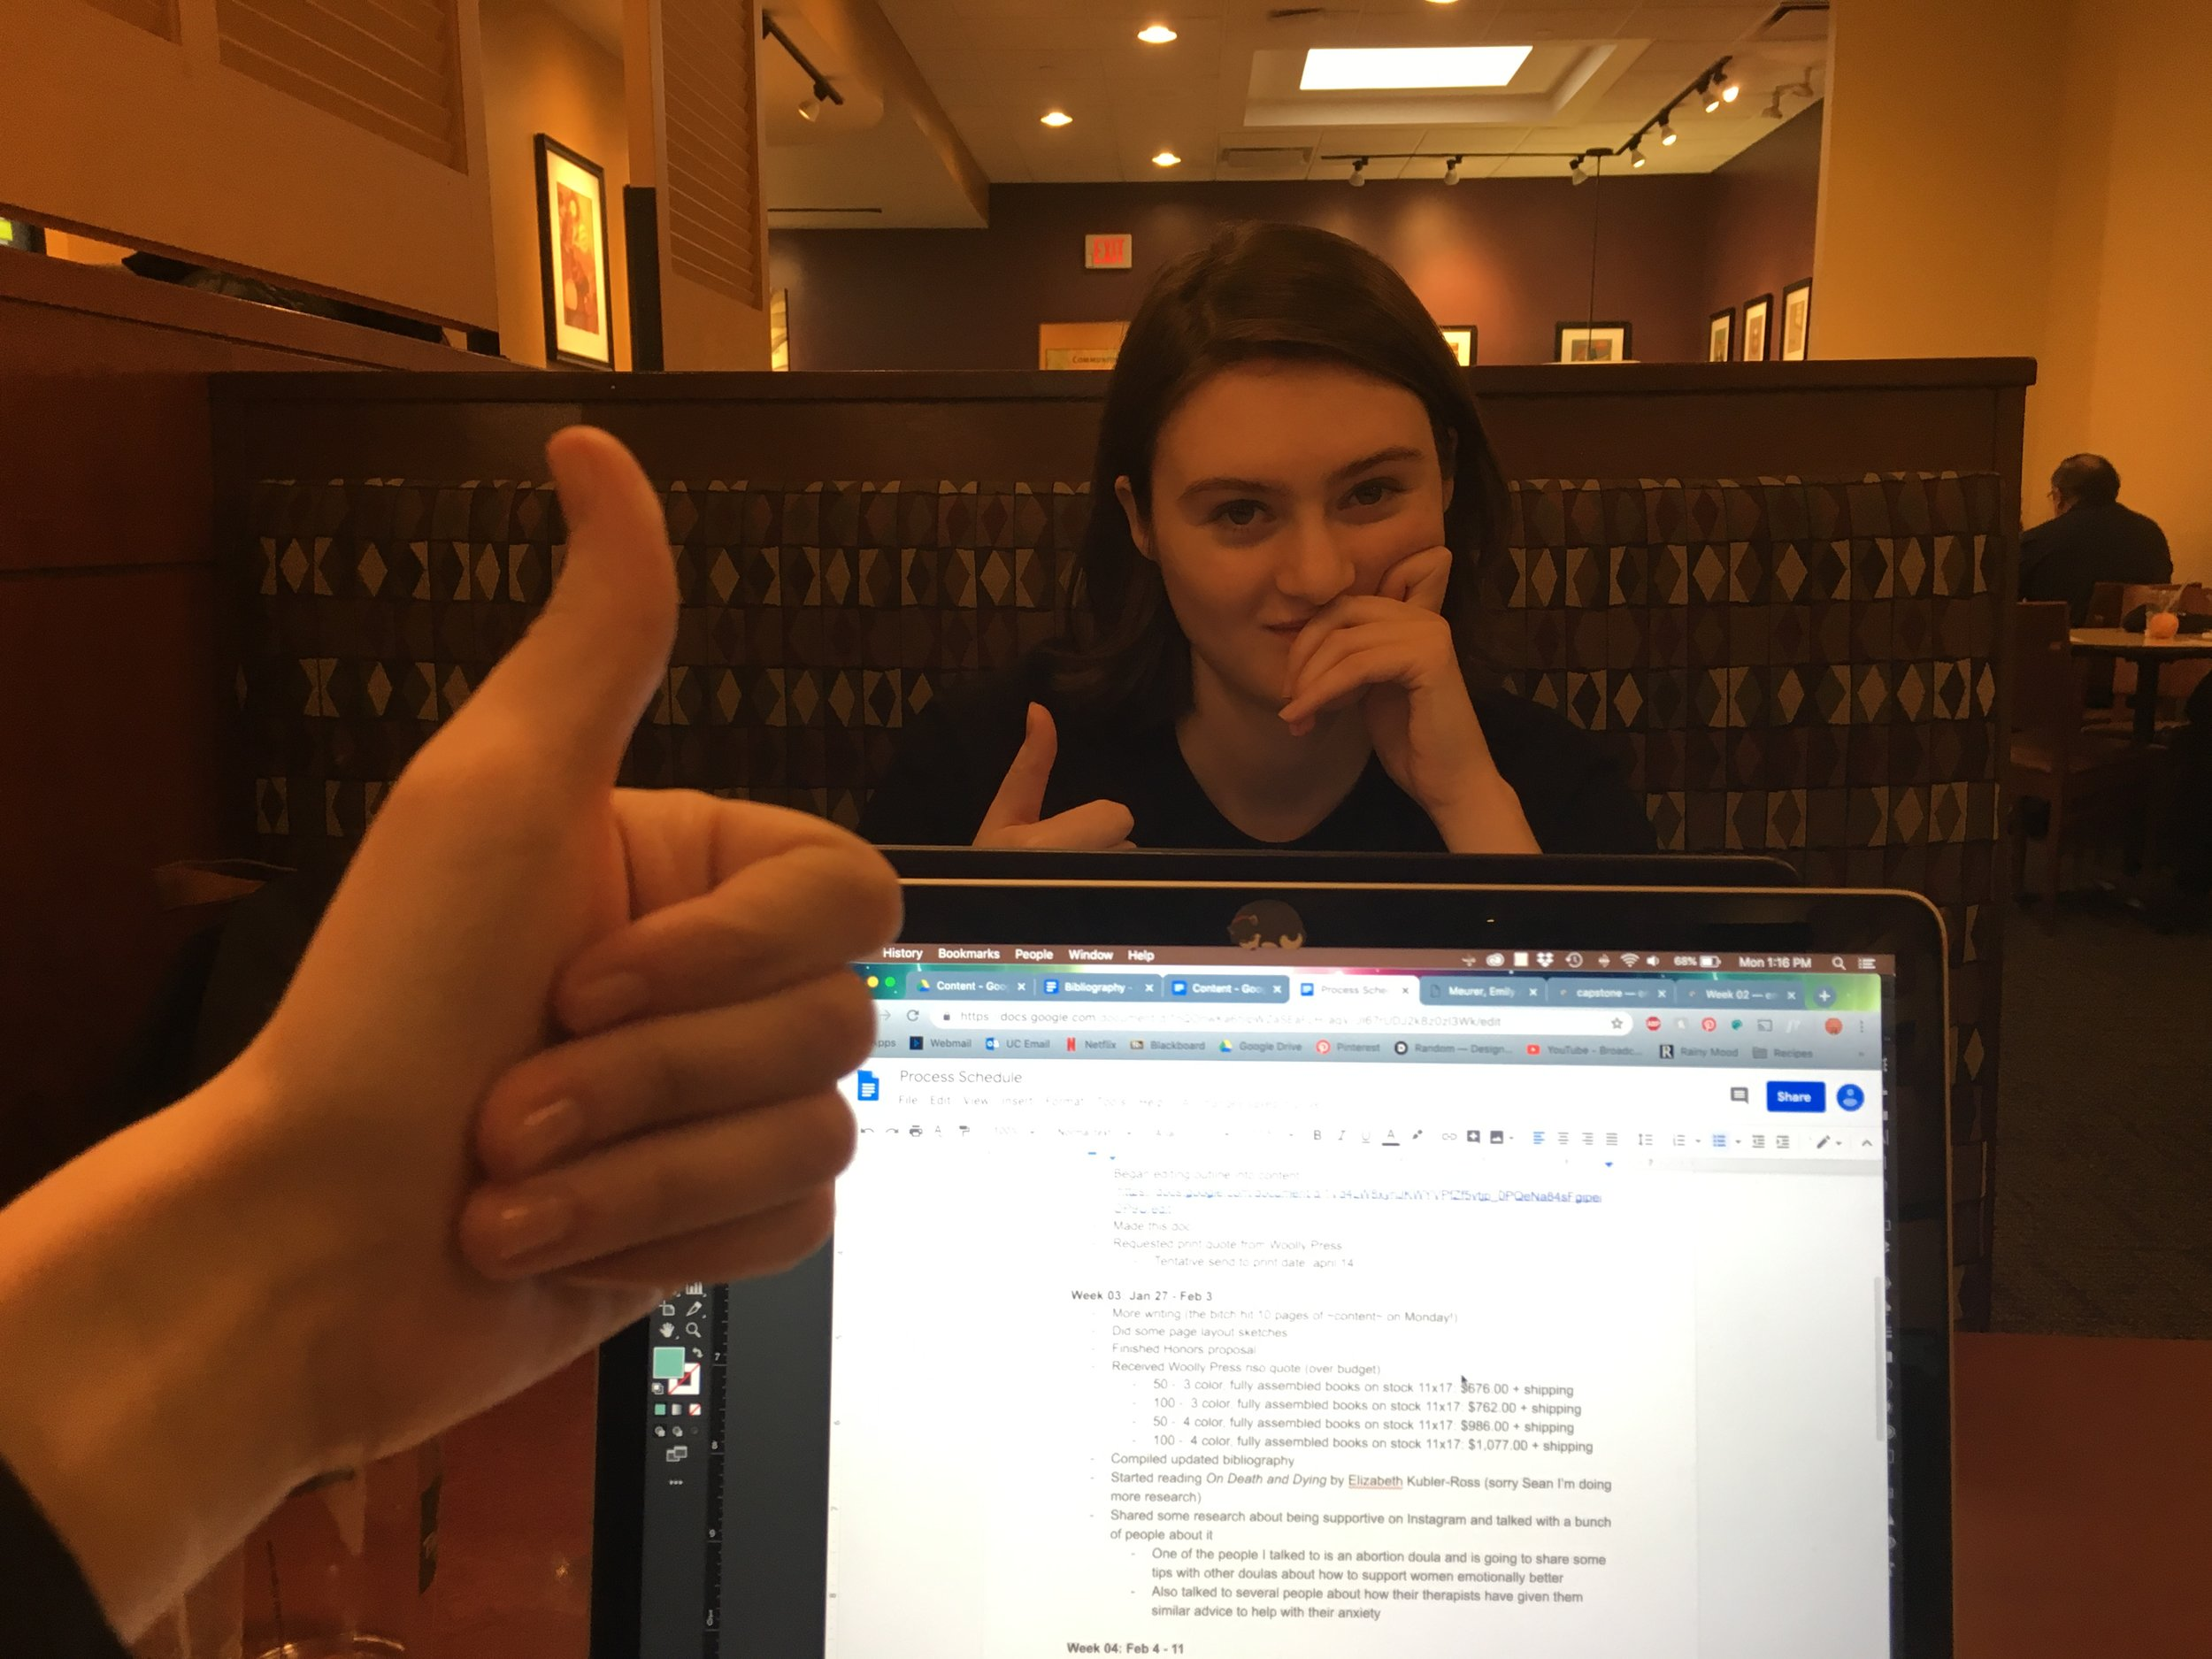 Look at us being productive at Panera while we eat soup!